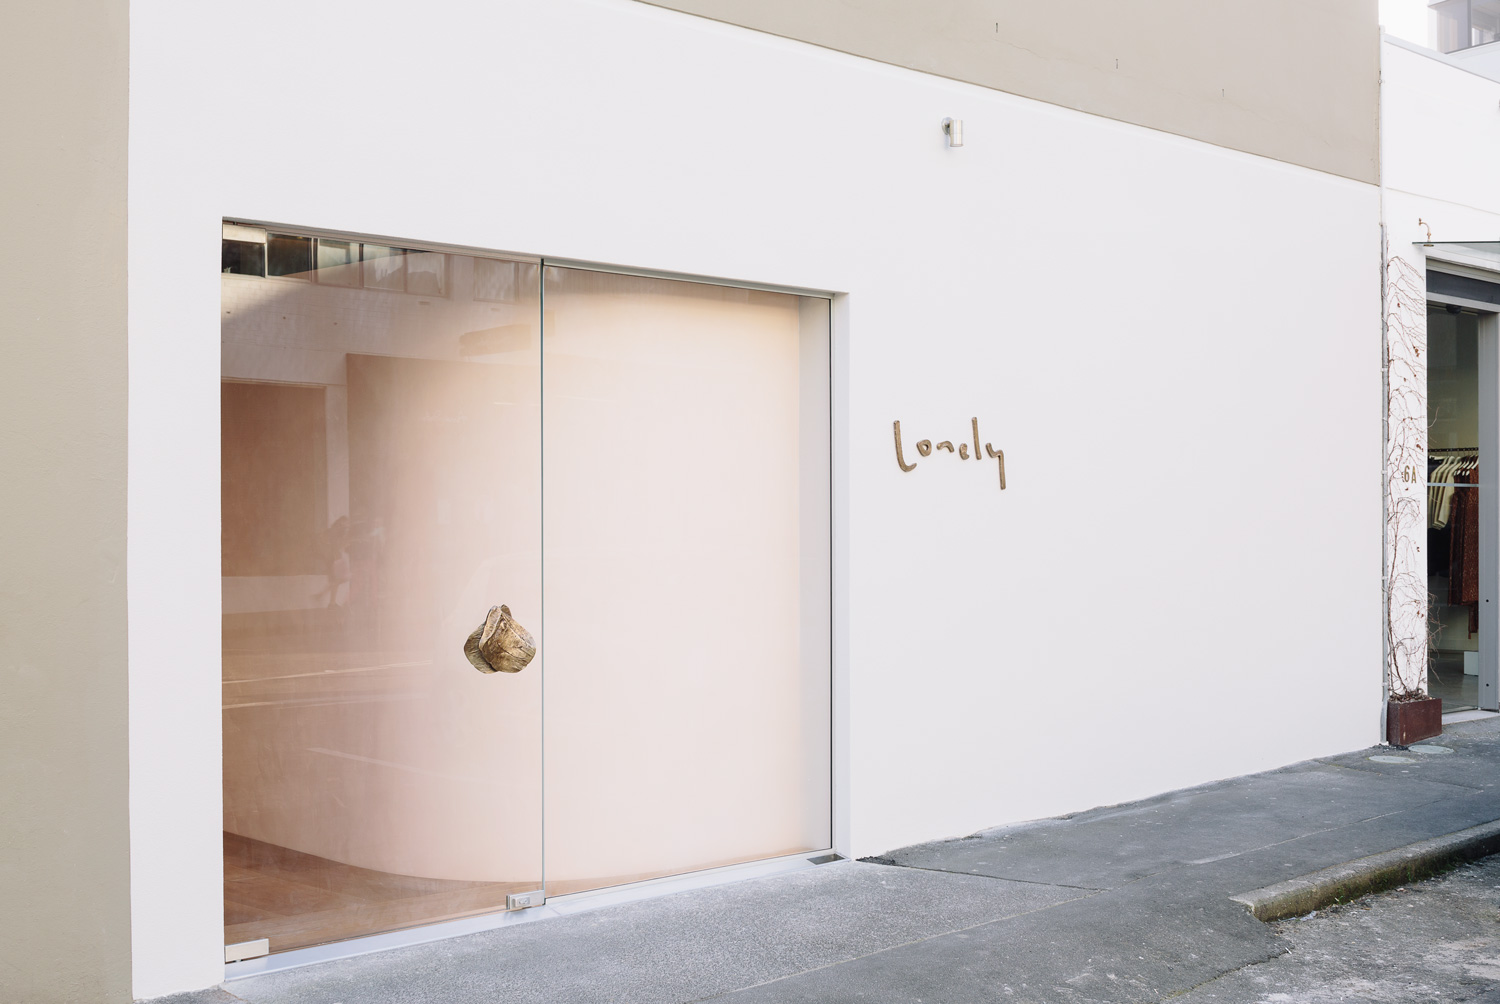 Lonely Boutique in Newmarket, Auckland by Rufus Knight | Yellowtrace